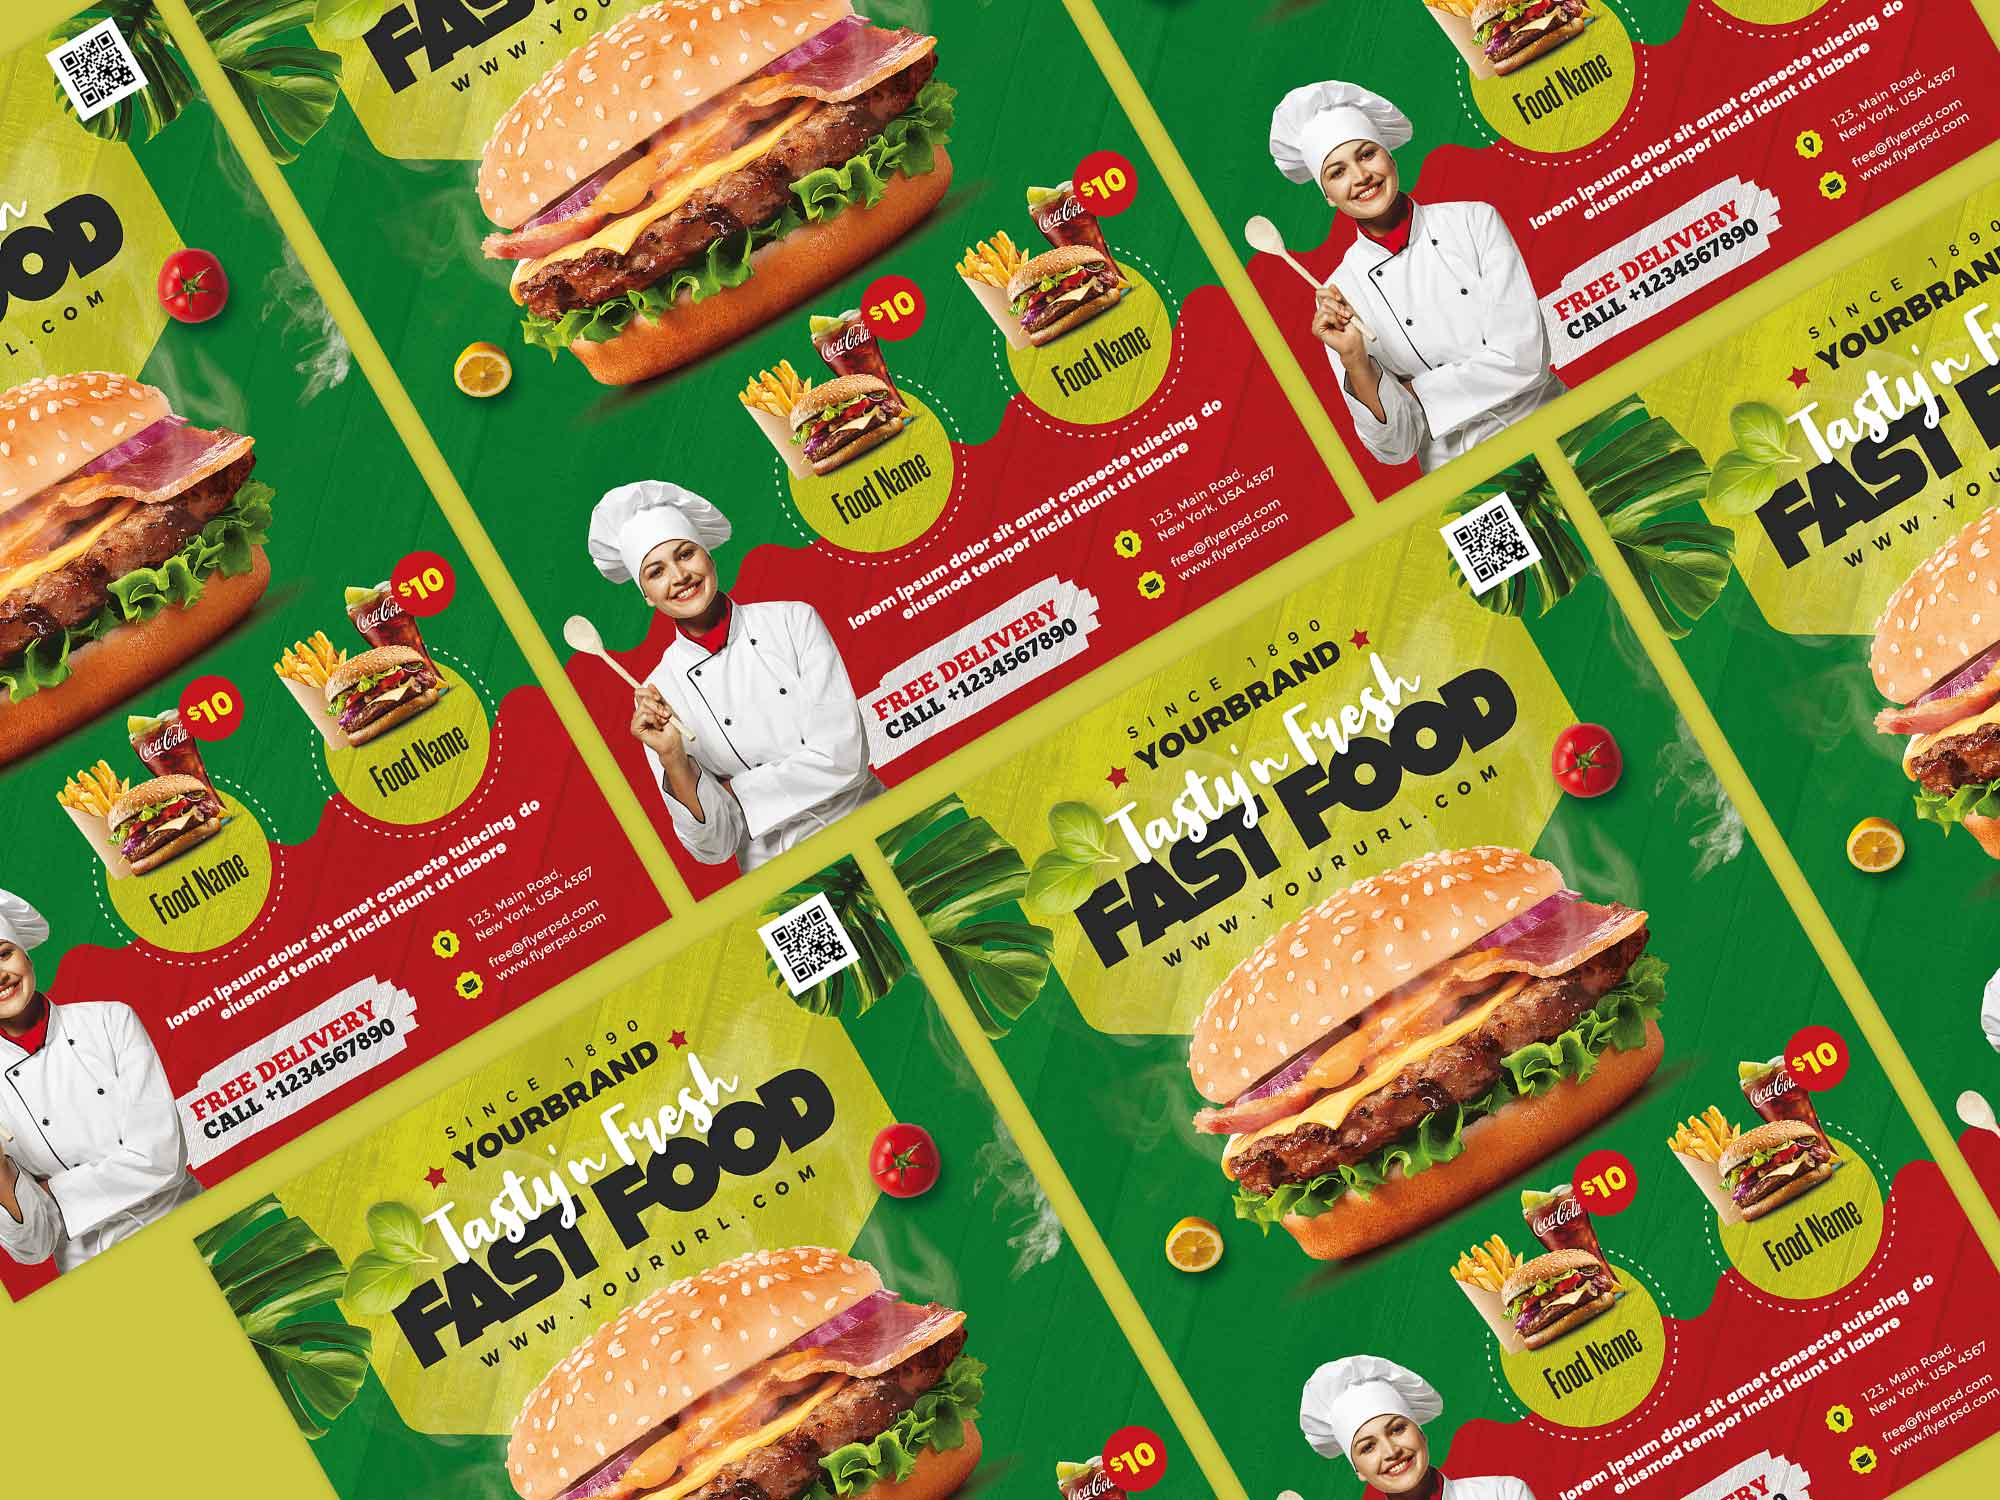 Fast Food Restaurant Menu Flyer Template 2